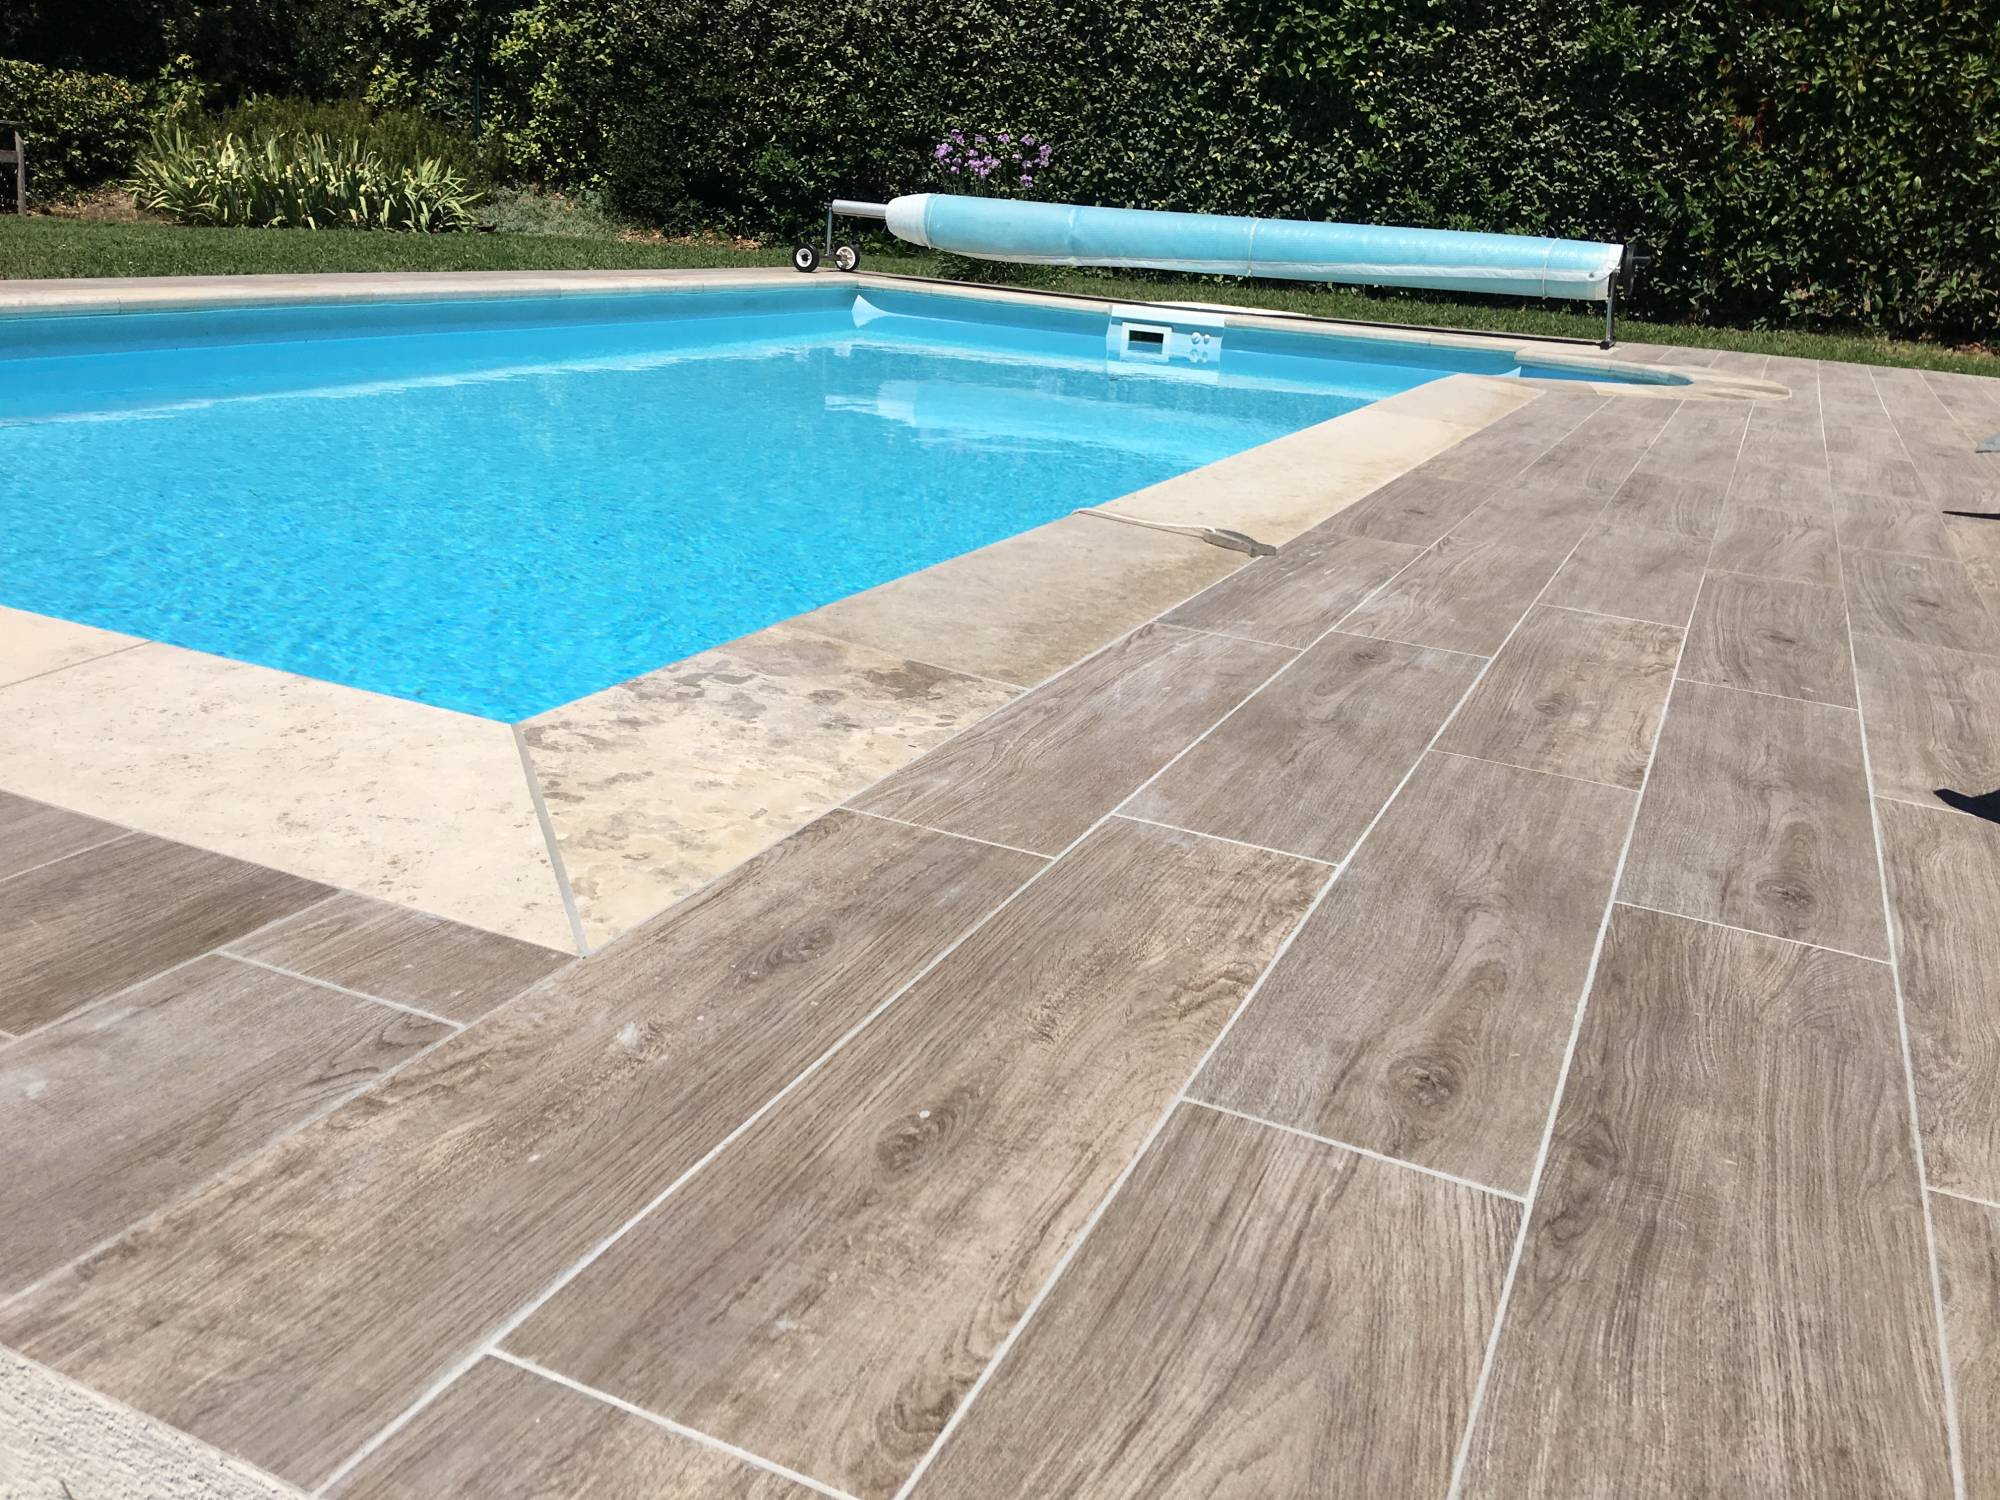 Dallage piscine imitation bois 28 images carrelage for Piscine en carrelage